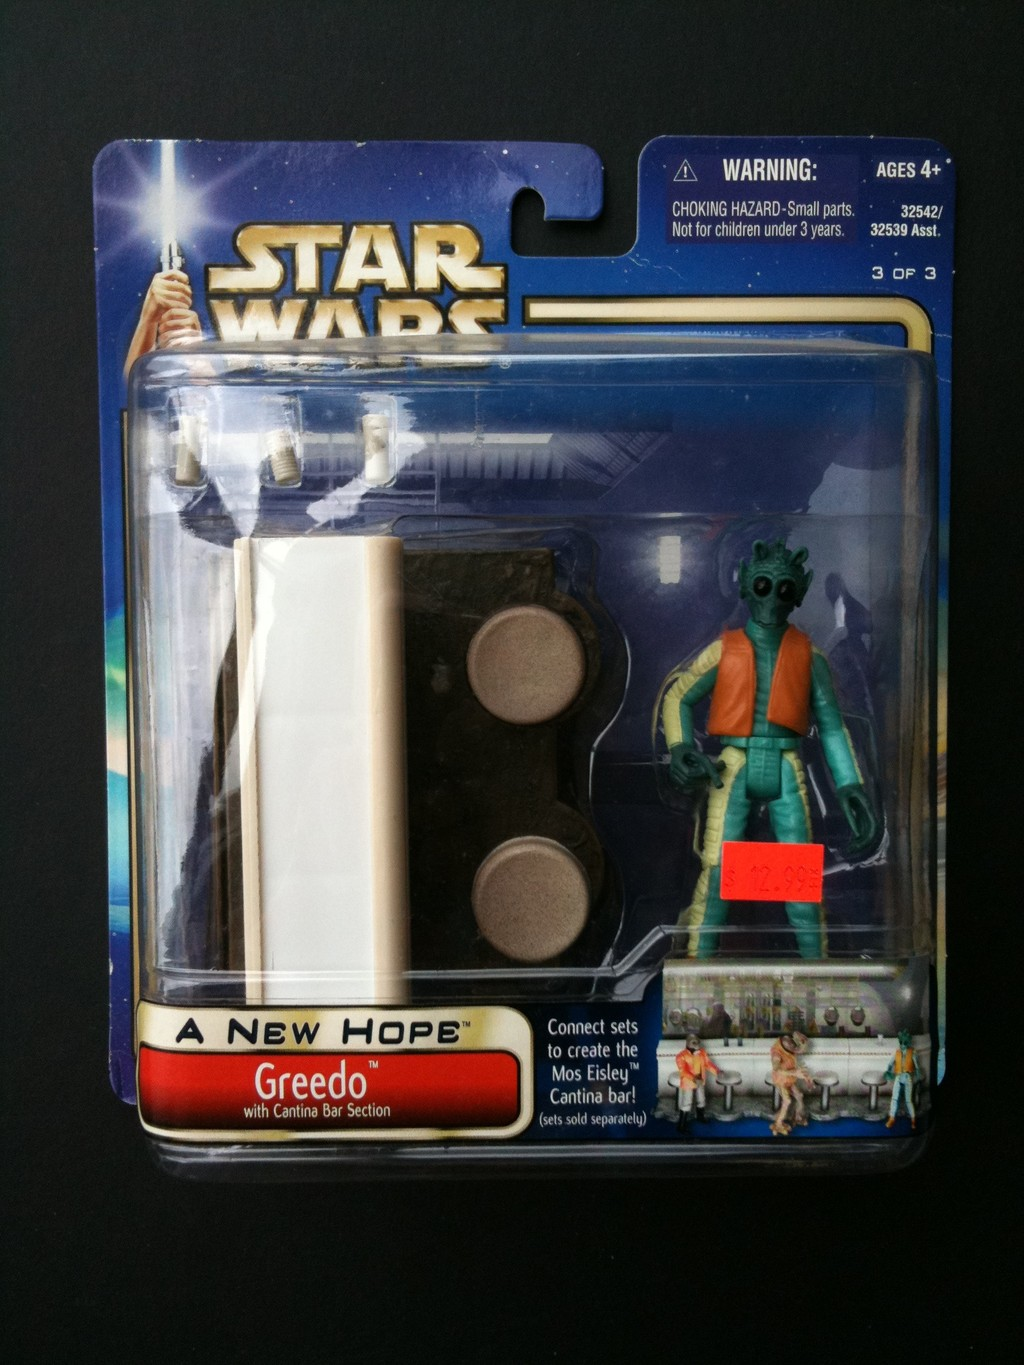 Greedo (with Cantina Bar Section)